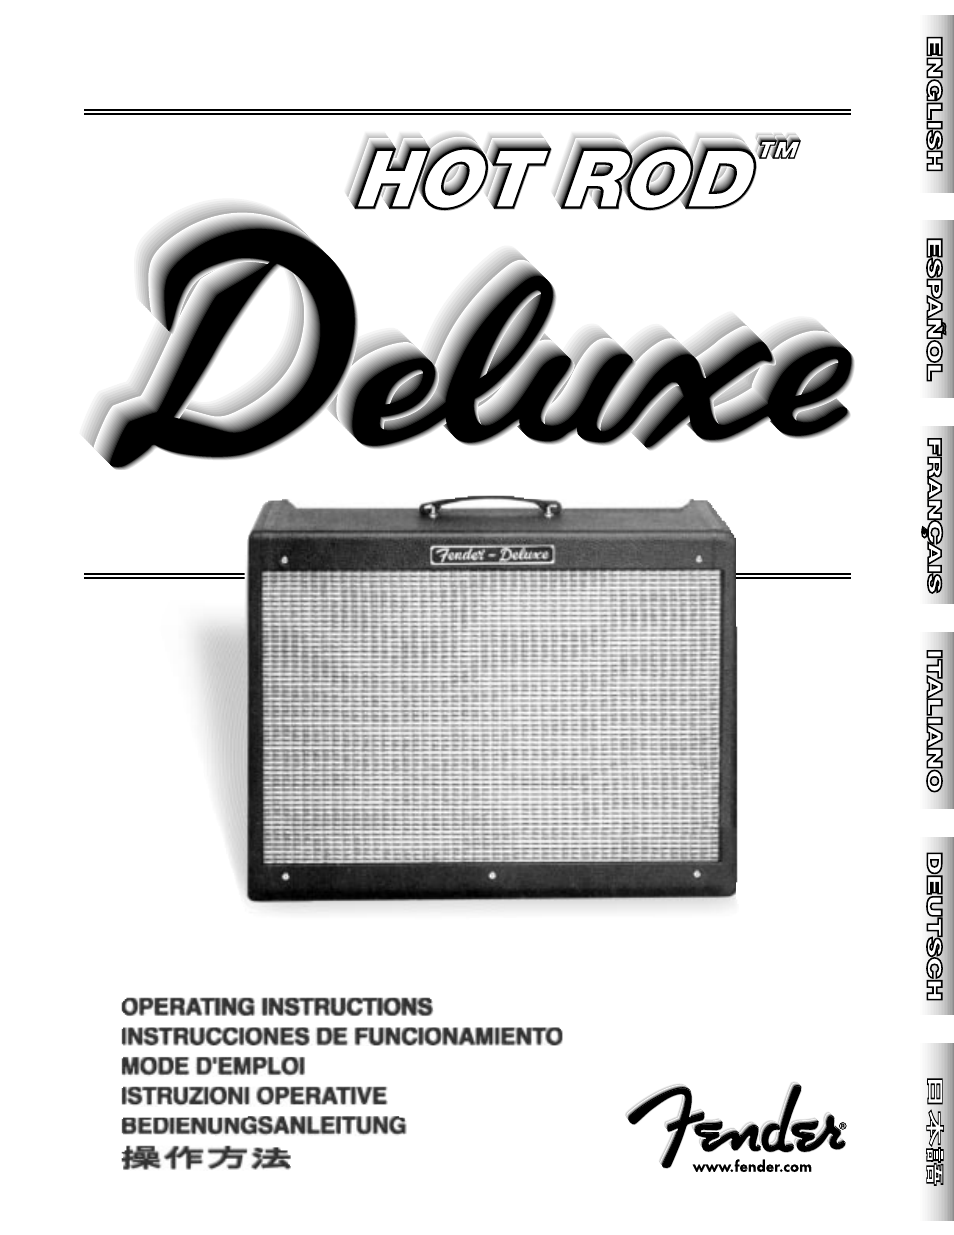 fender hot rod deluxe user manual 20 pages original mode rh manualsdir com fender hot rod deluxe 3 manual Fender Hot Rod Deluxe Manual